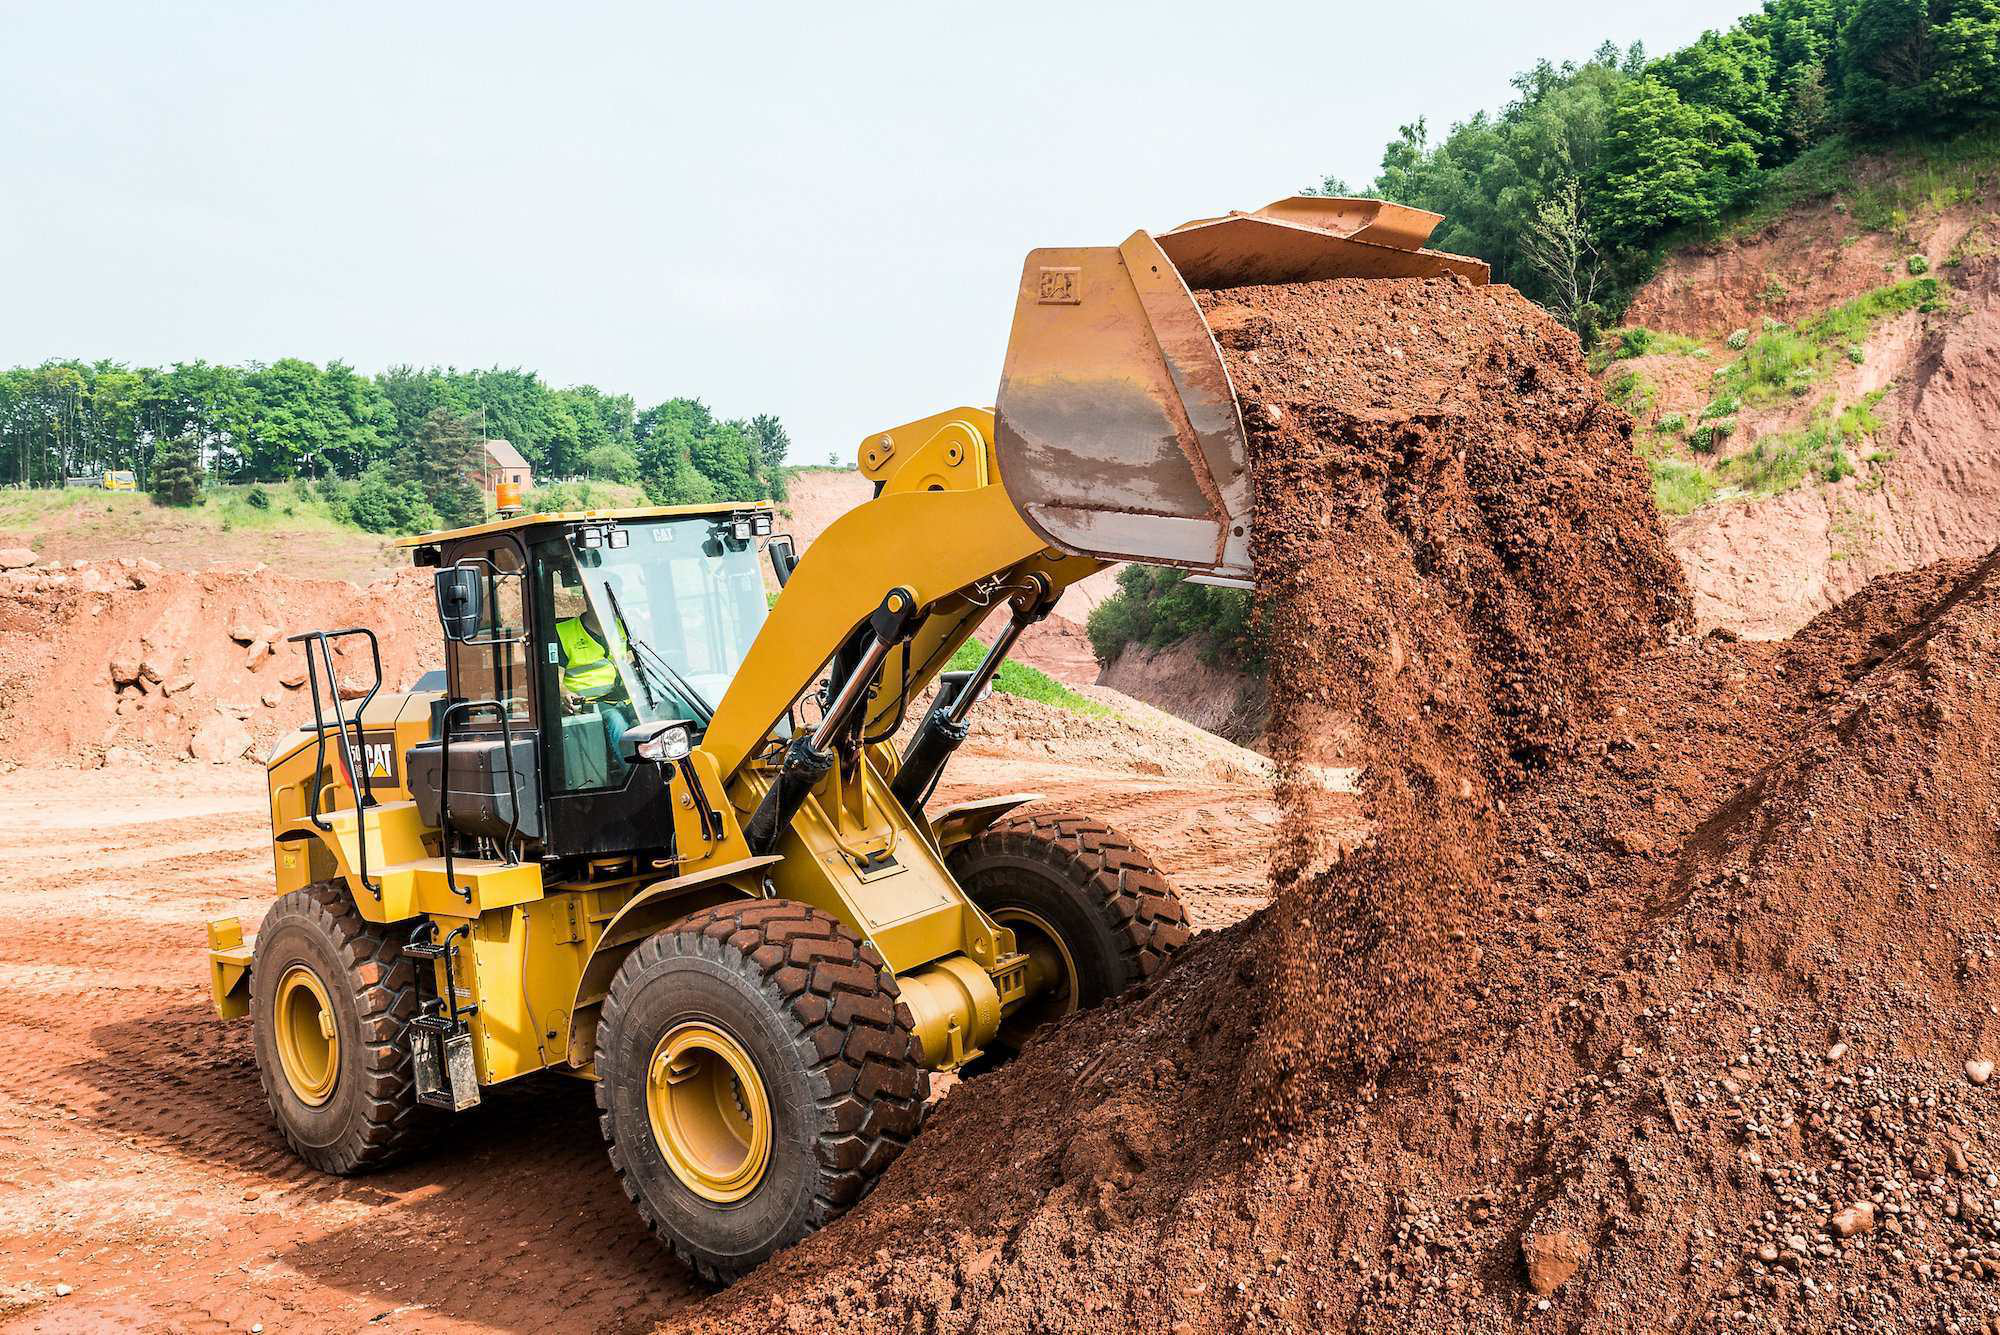 Cat intros 950 GC, a lower-spec loader developed using